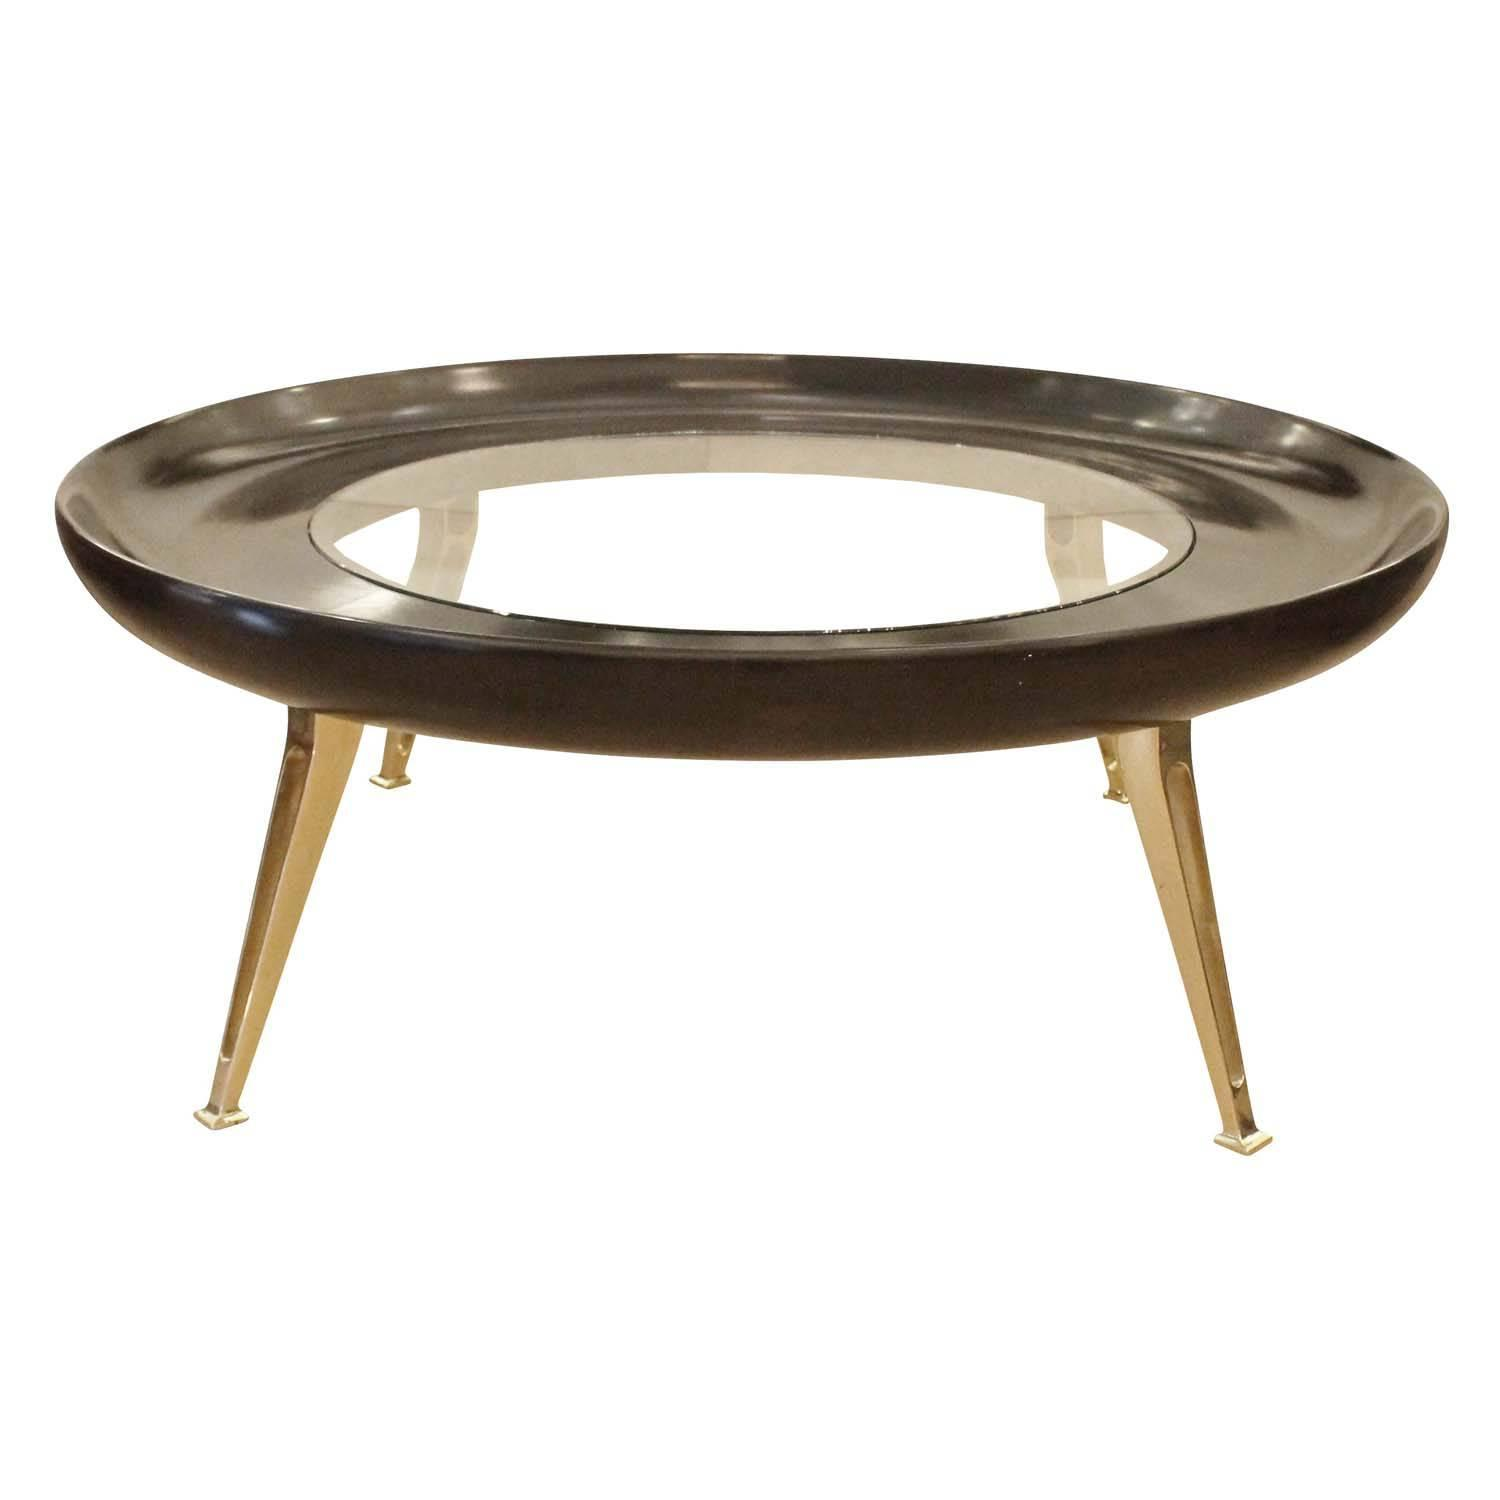 Large round brass and wood coffee table at 1stdibs for Large wooden coffee tables